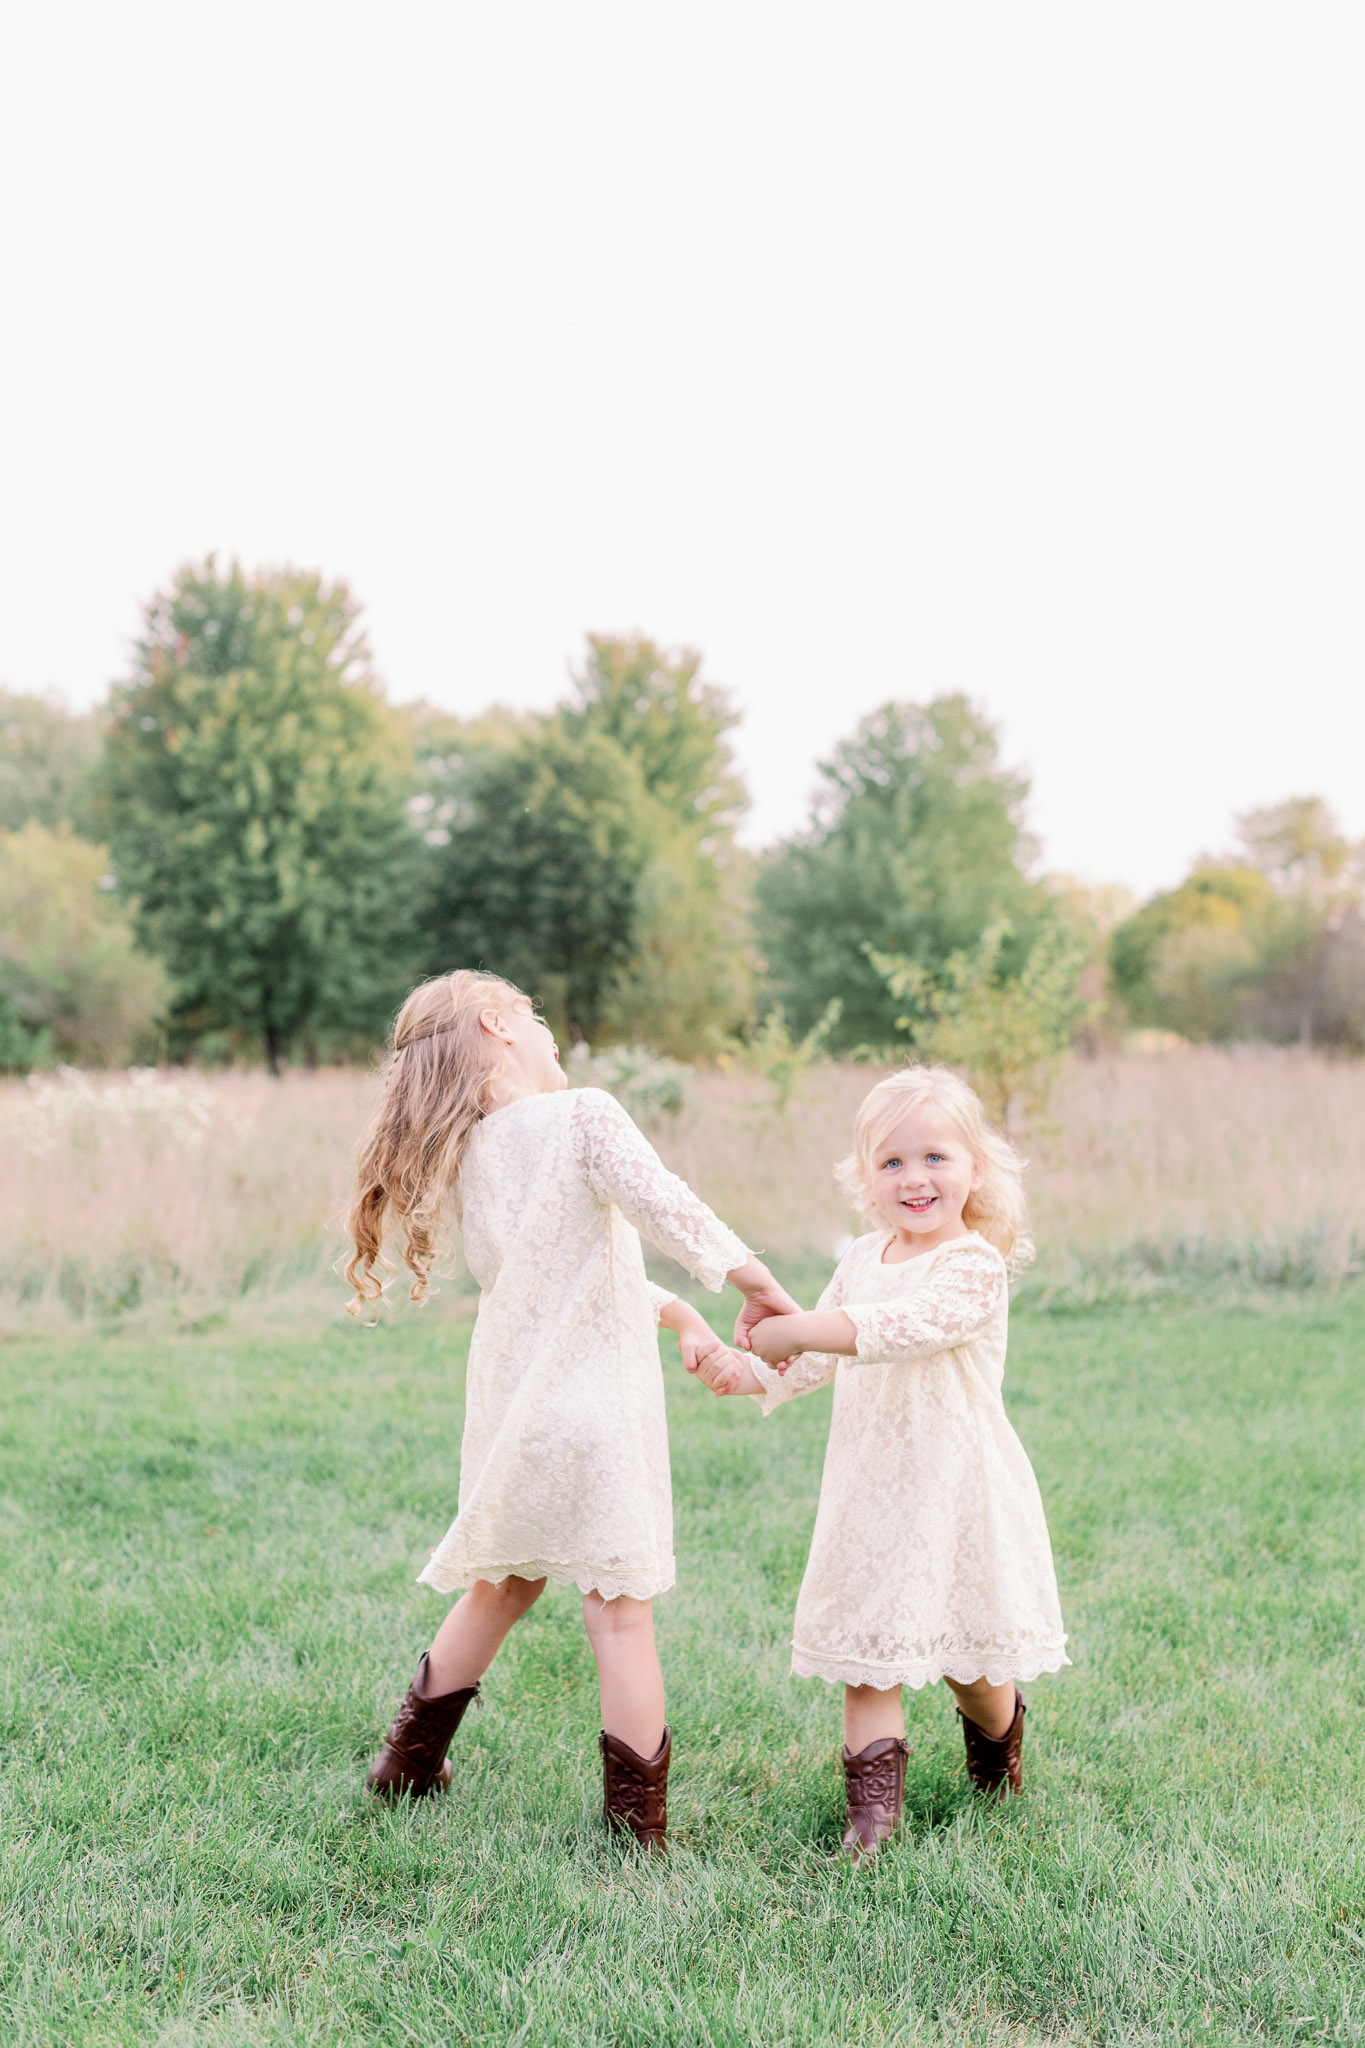 Chicago Lifestyle Family Photographer – St Charles Fall Family Photos-23